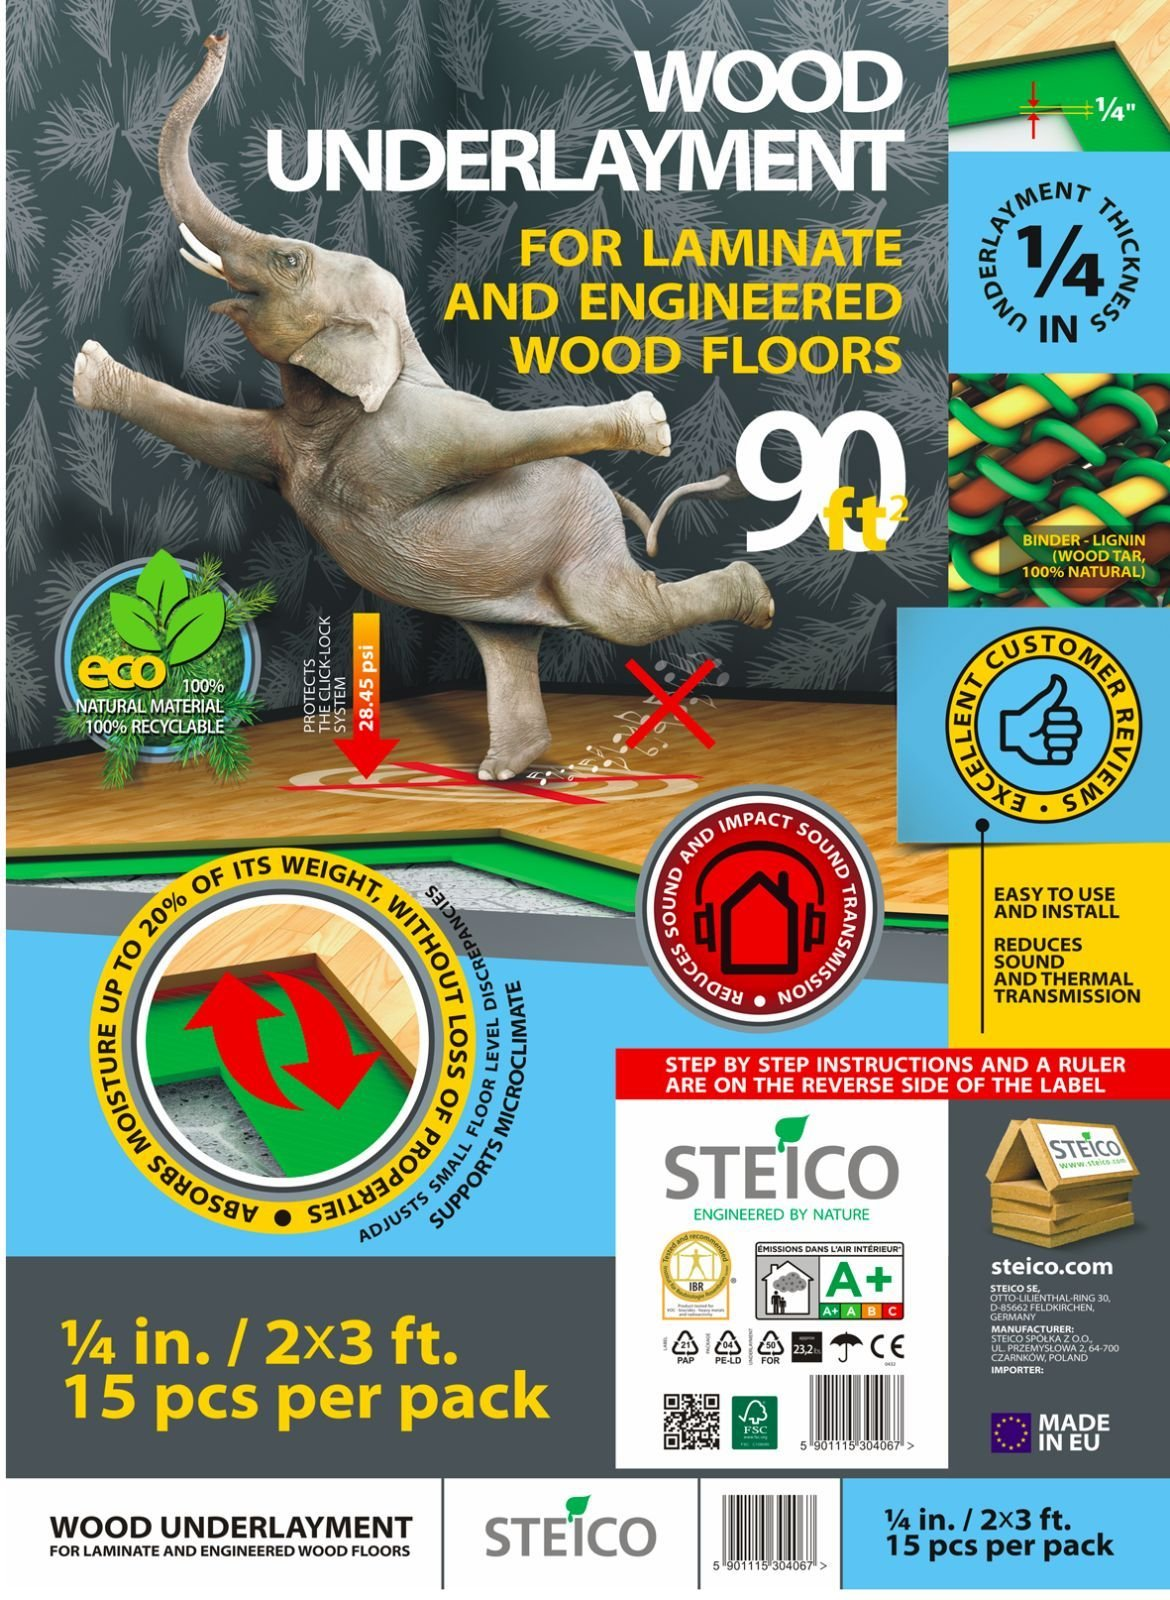 STEICO 4 in 1 soft Underlayment for laminate, engineered wood floor, vinyl, LVT/LVP 6mm 1/4 Inch 90 SqFt with soundproofing natural green wood fibre and excellent airborne and impact sound insulation by STEICO (Image #1)